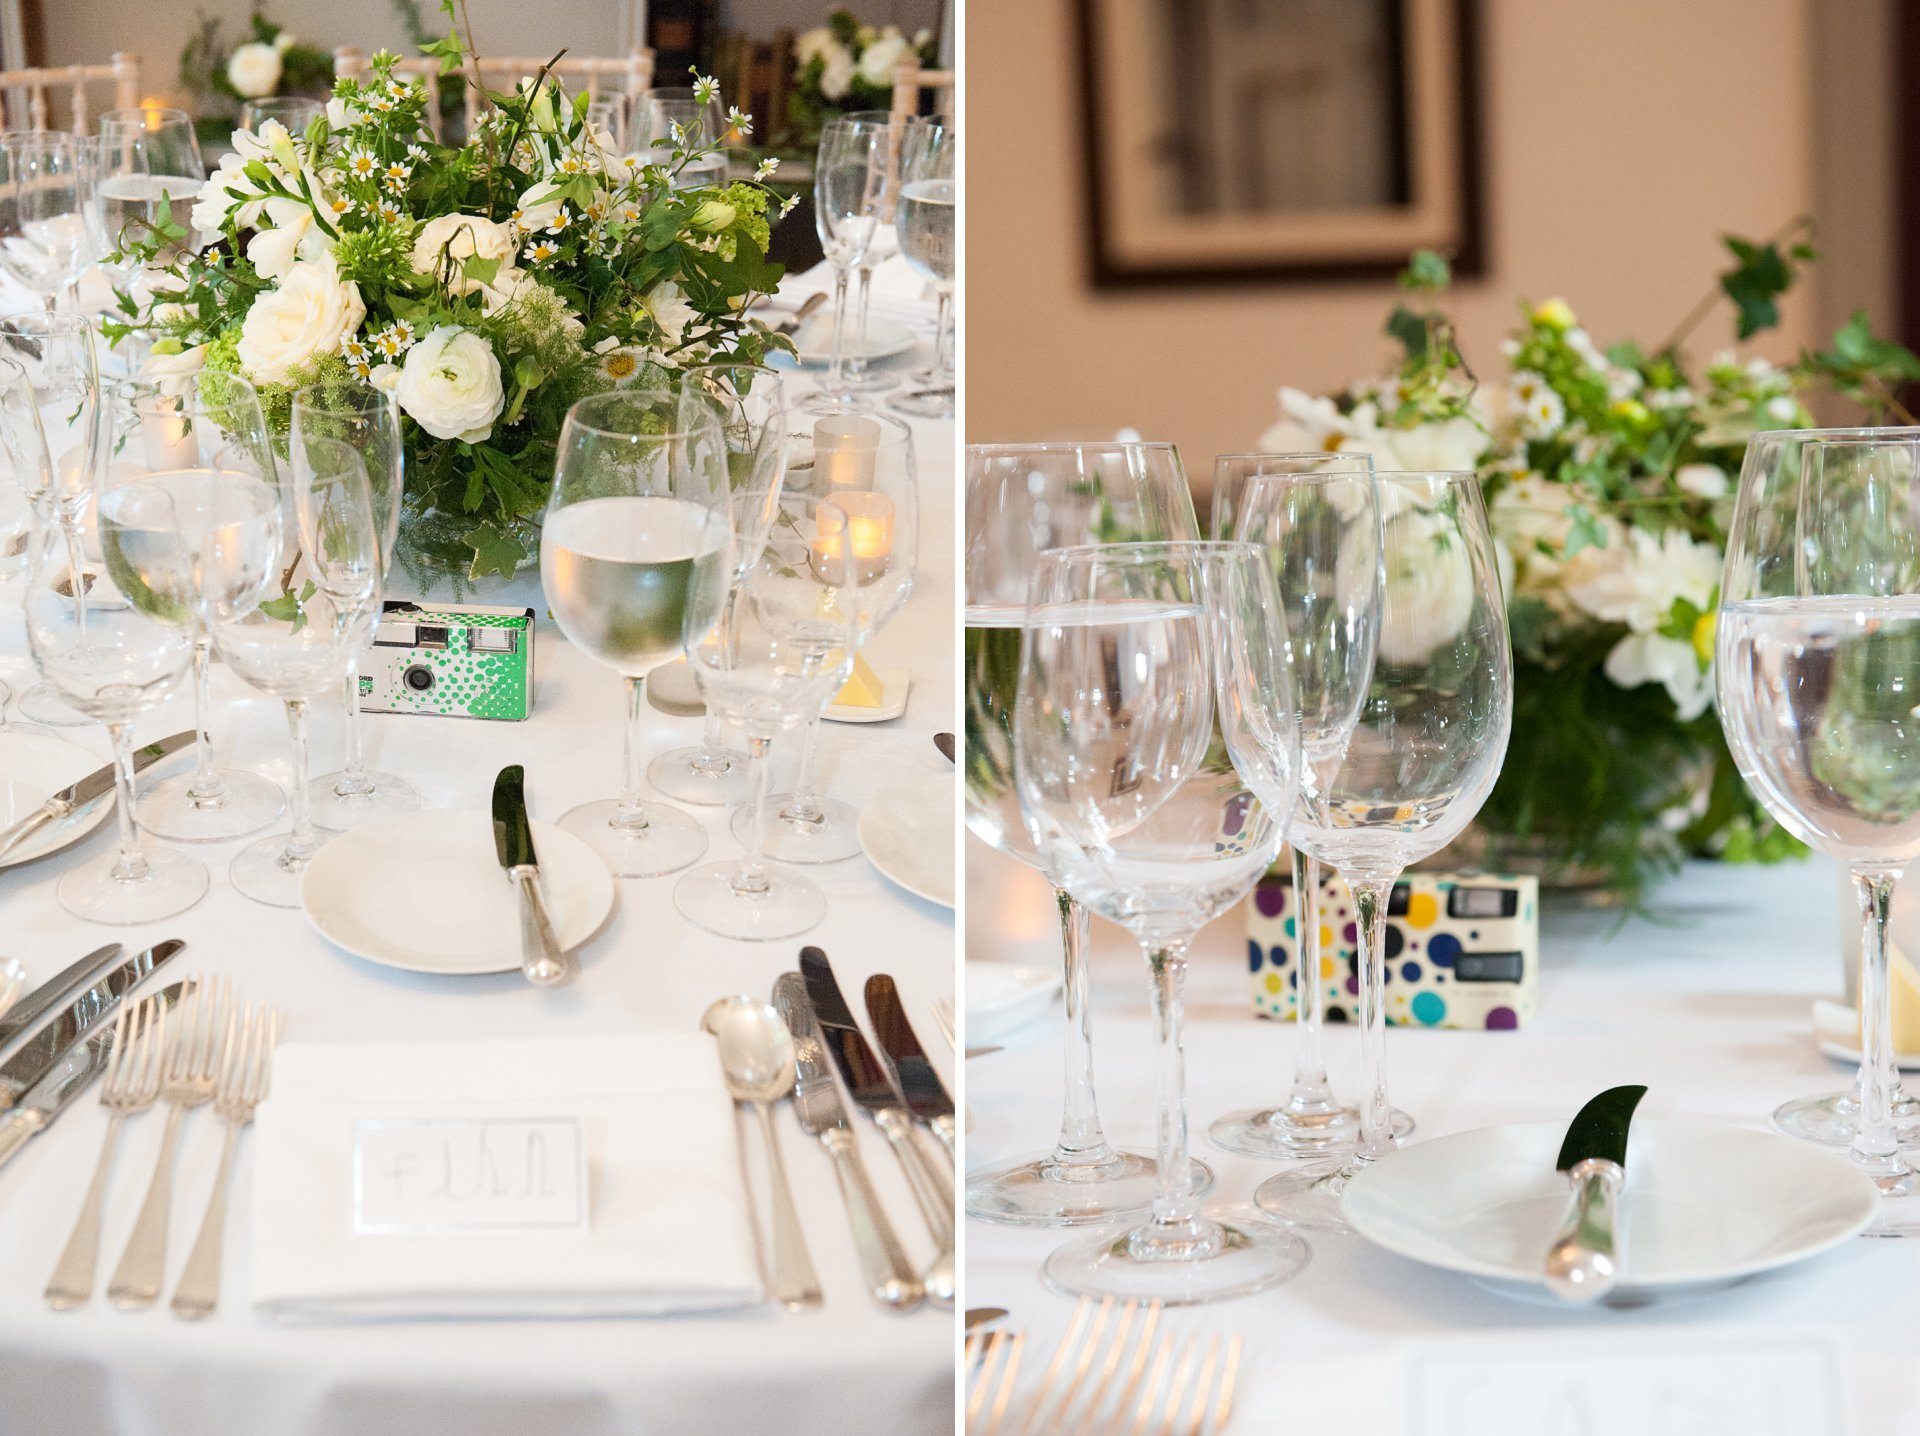 Table setting for a Fulham Palace wedding breakfast